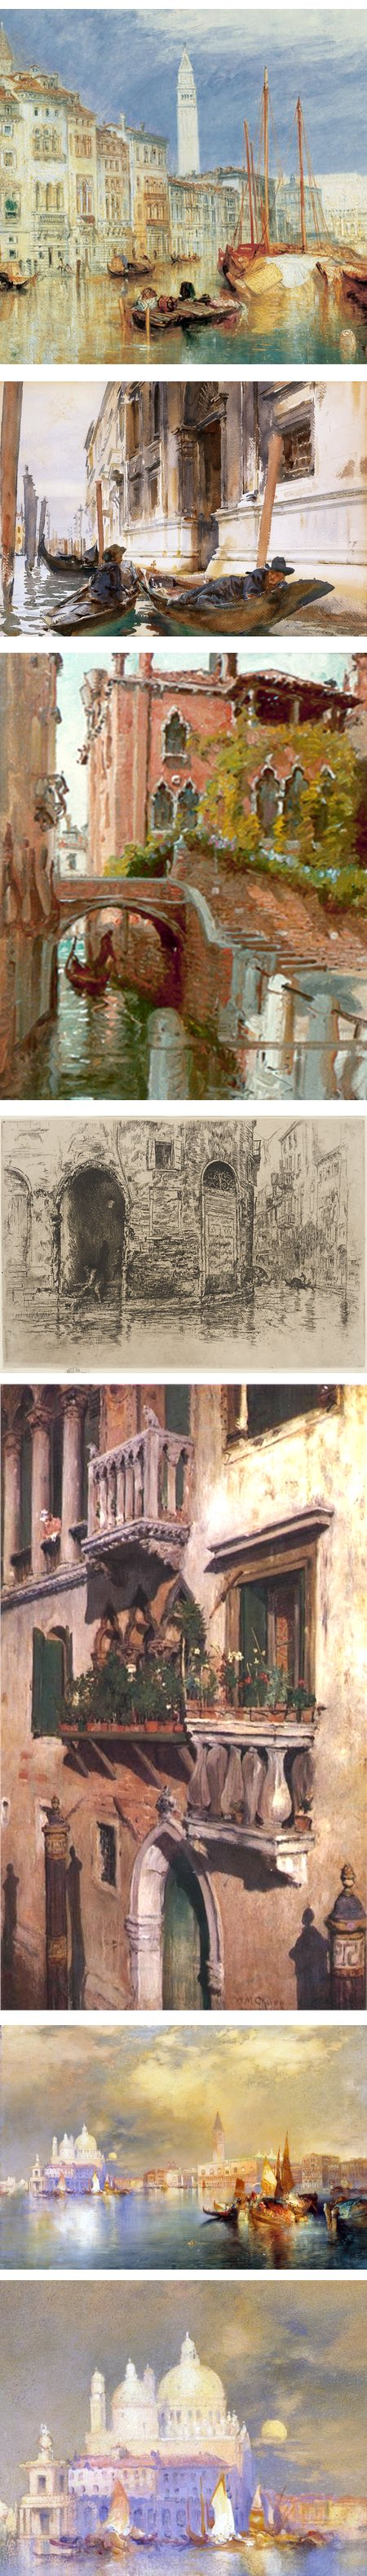 Artists views of Venice: Turner, Sargent, Anna Richards Brewster, Whistler, William Merritt Chase, Thomas Moran